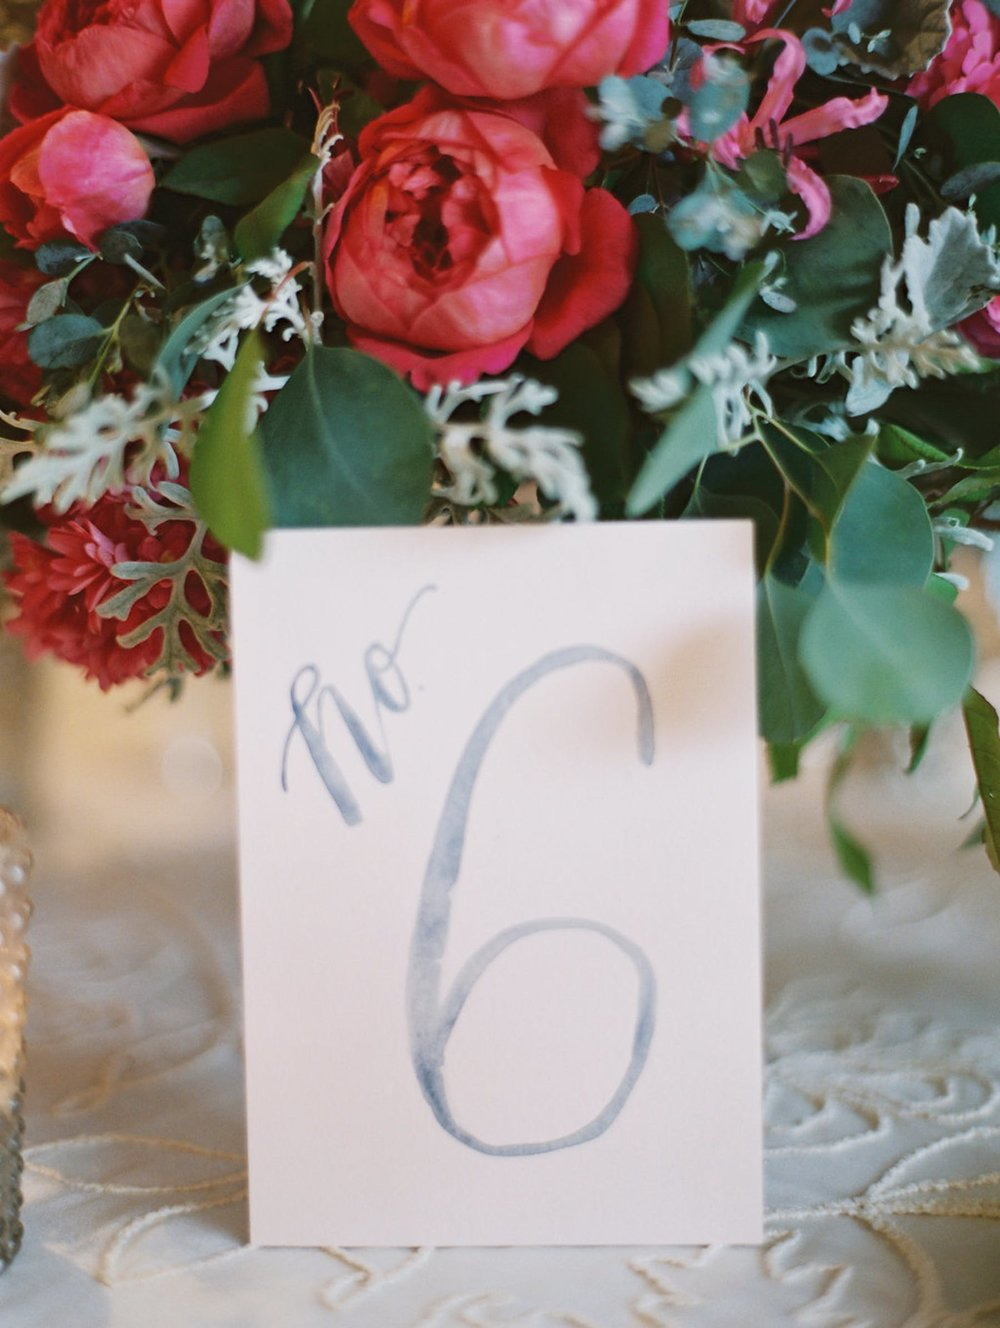 www.santabarbarawedding.com | El Encanto | Coco Rose Design | This Modern Romance | Reception Table Number